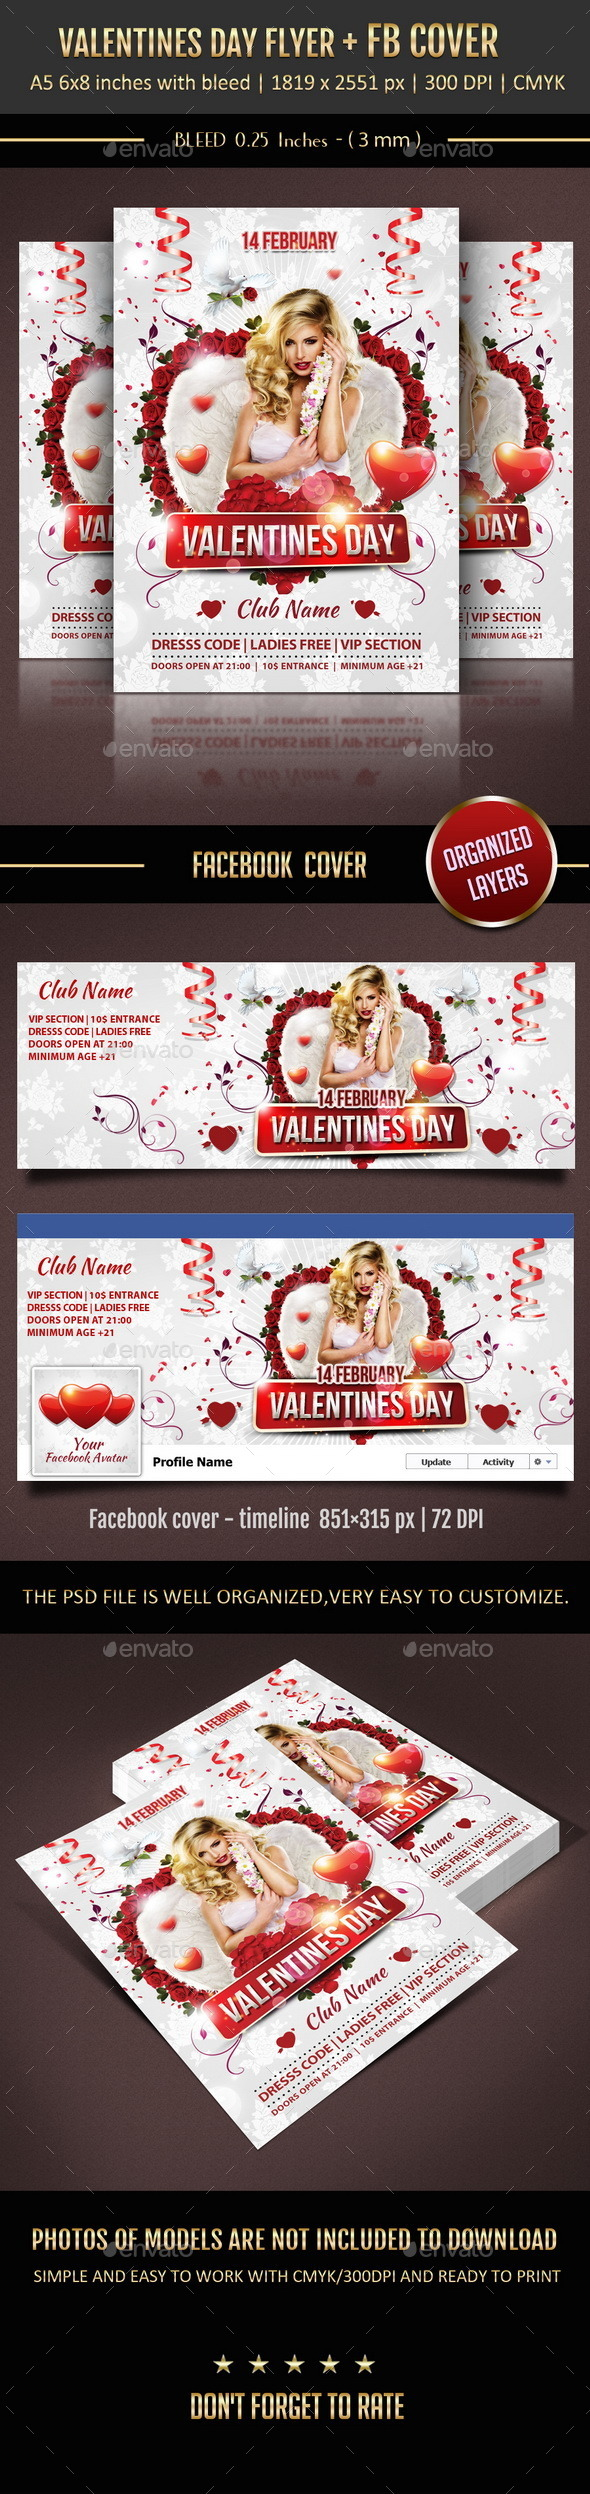 Valentines Day Flyer + Facebook Cover - Holidays Events